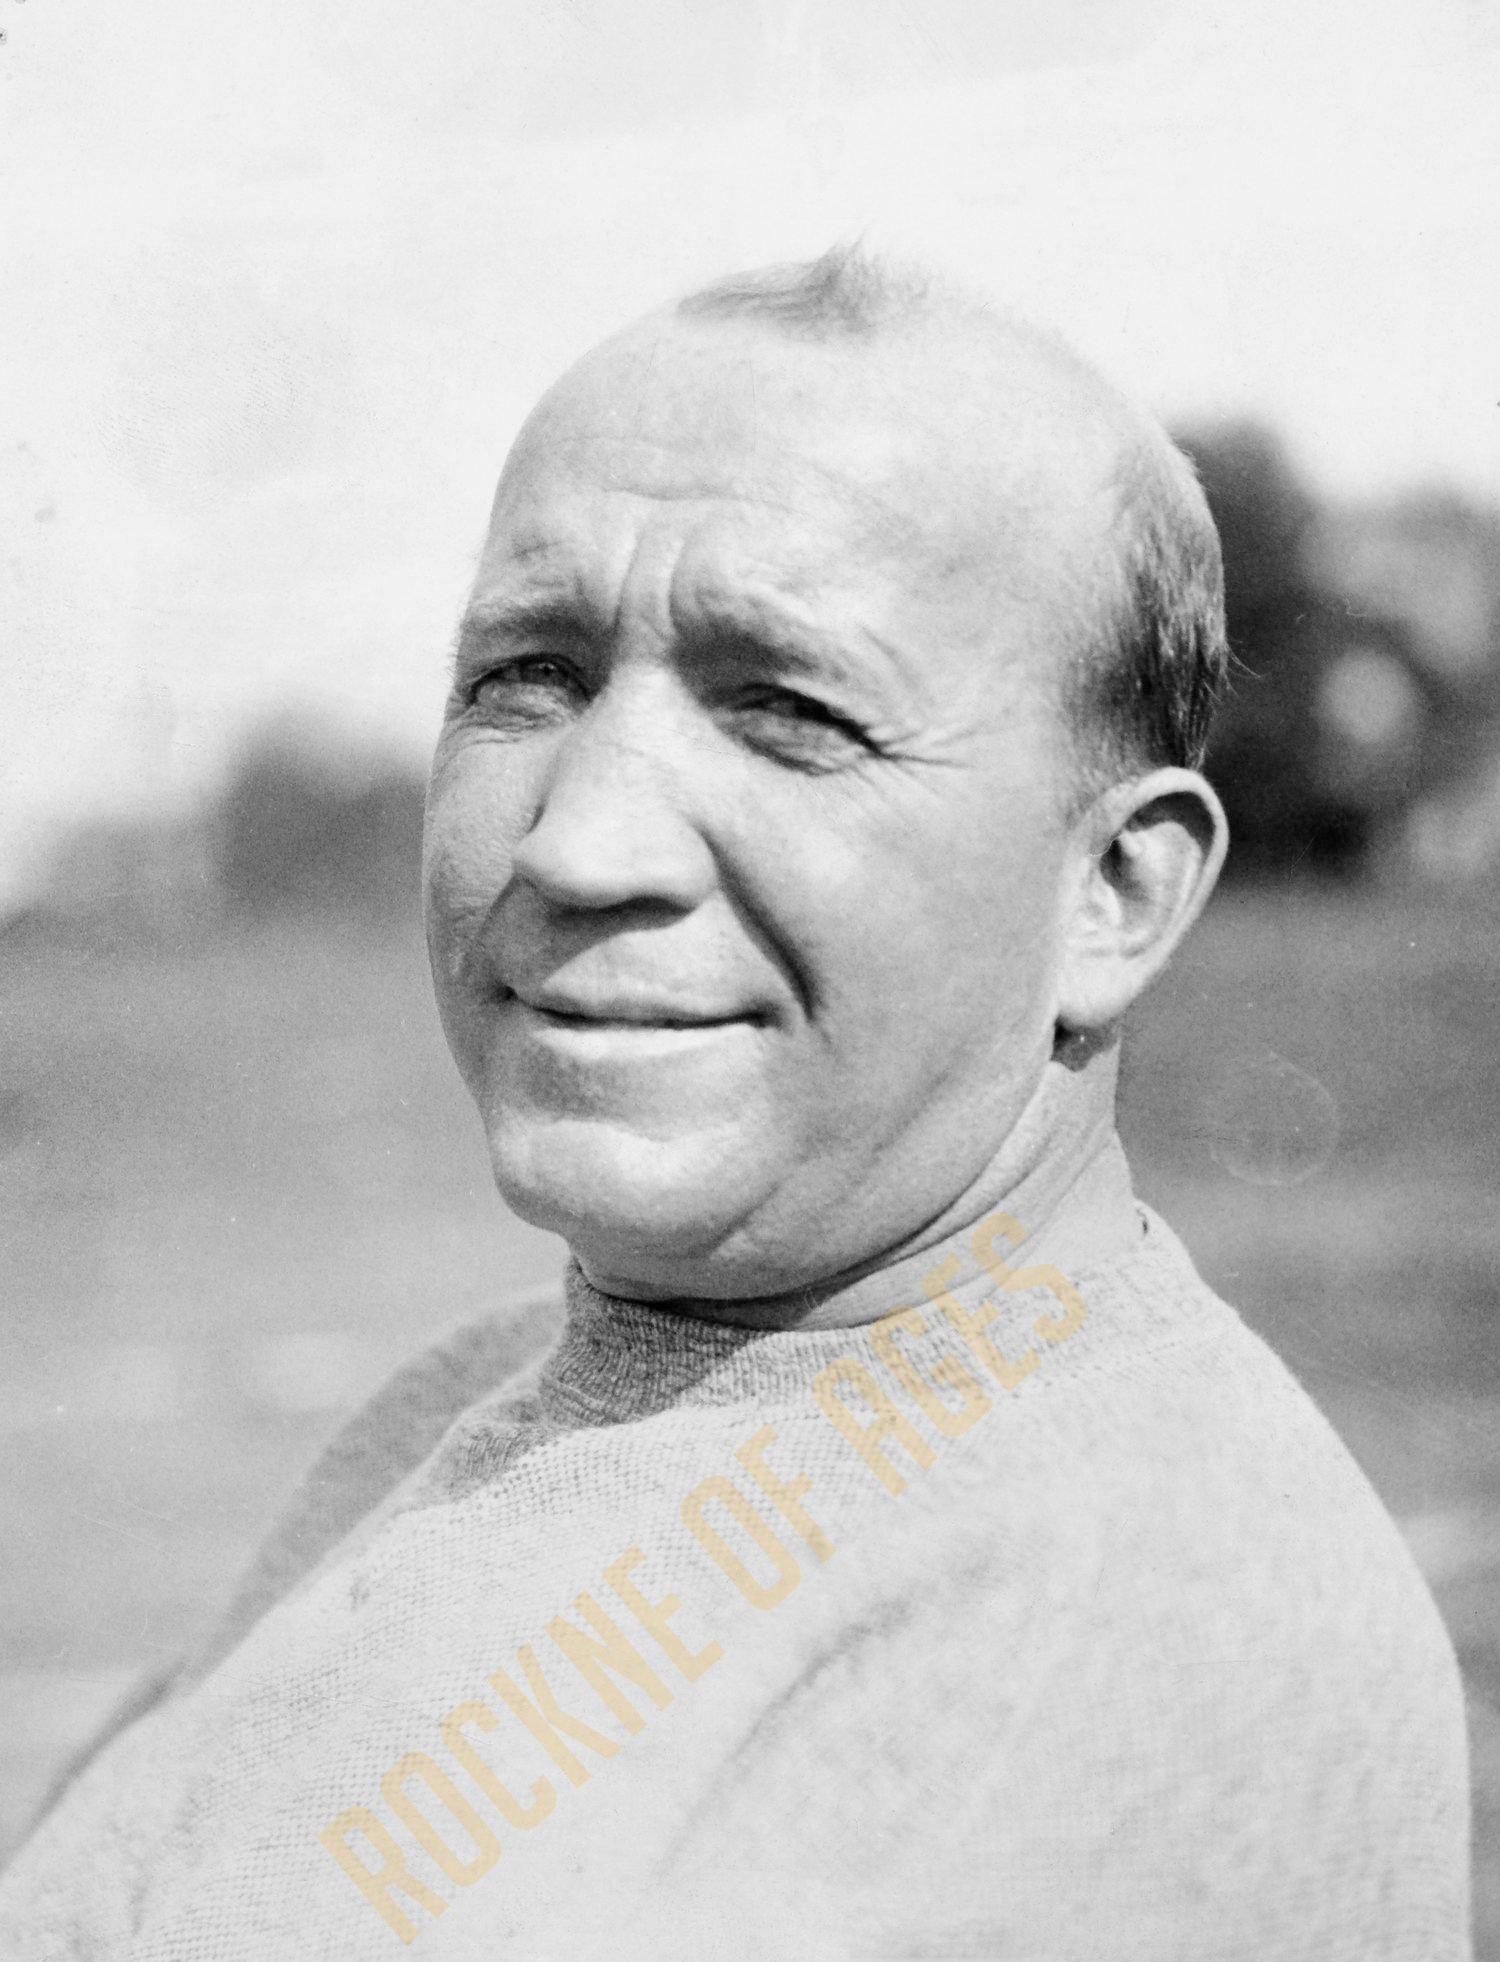 Rockne the coach in a practice session sweatshirt.